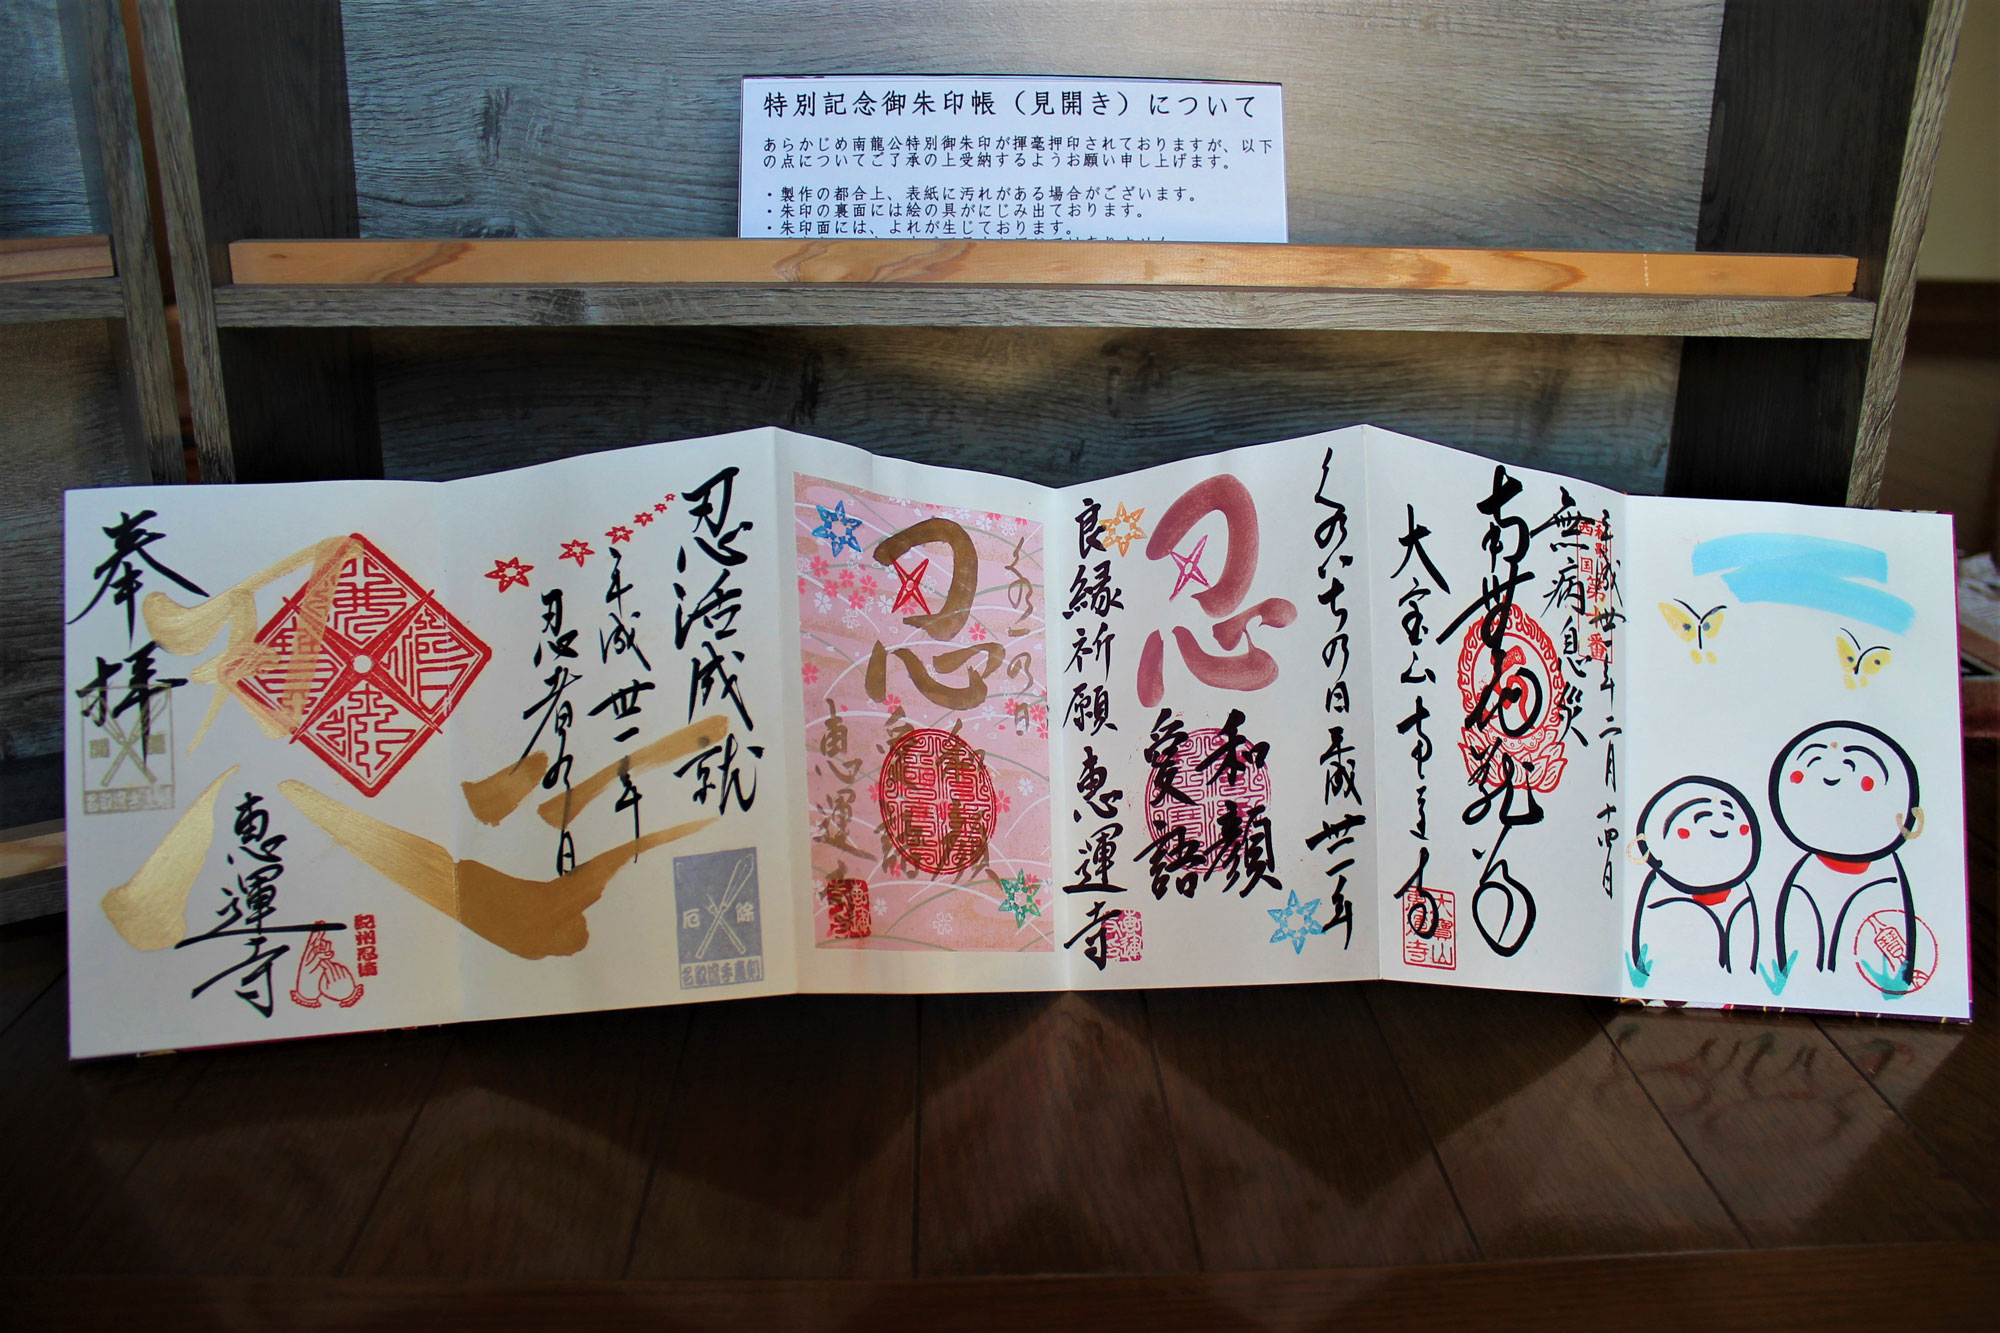 There are various types of limited Goshuin ( red stamps) depending on when you visit.  (For this type of the Goshuin (red stamp), please check the Goshuin(red stamp) schedule before visiting.)の写真